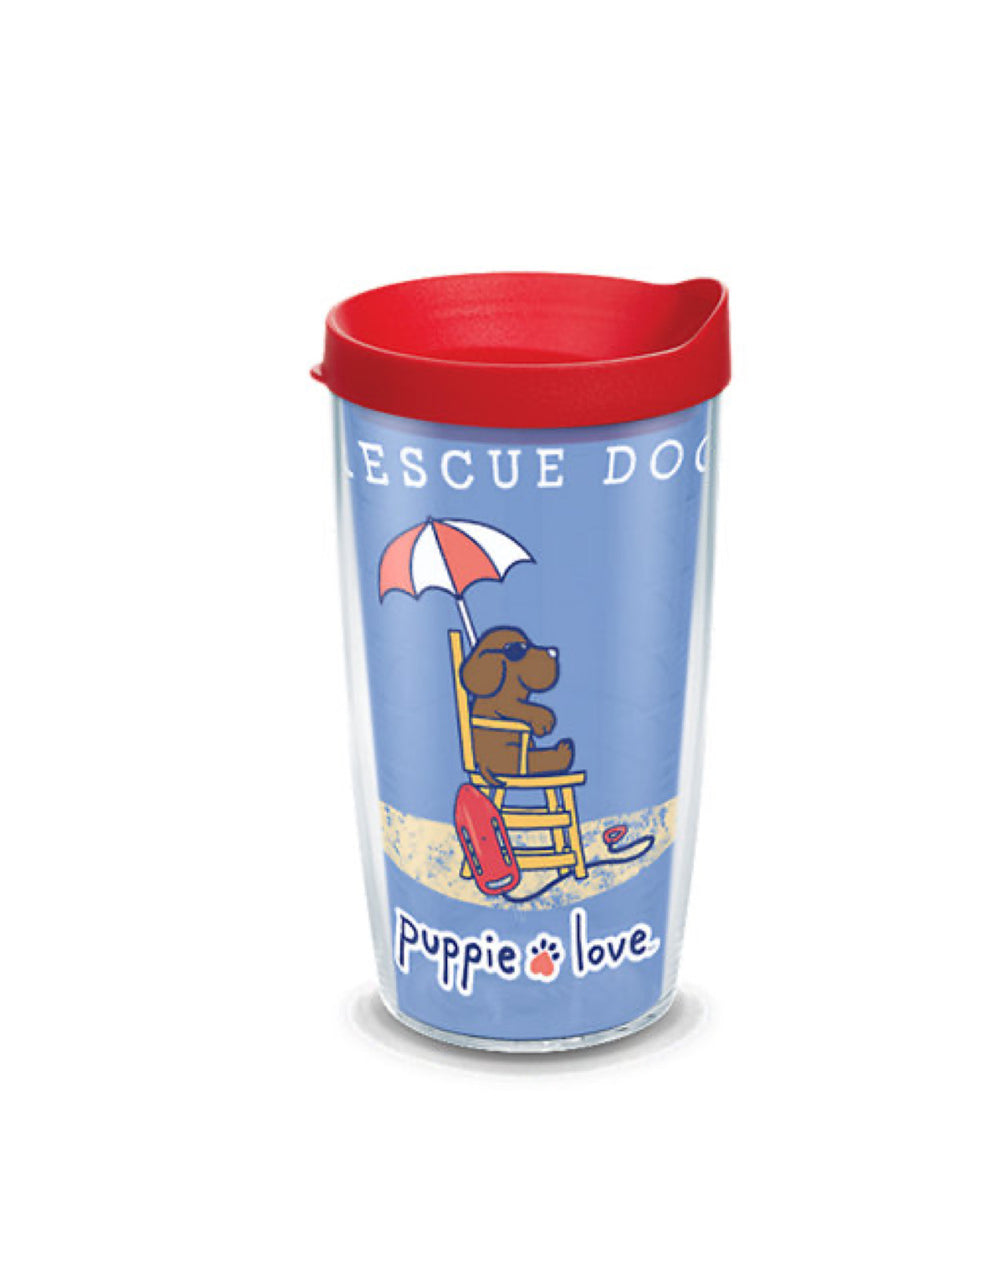 RESCUE PUP 16oz TUMBLER - Puppie Love